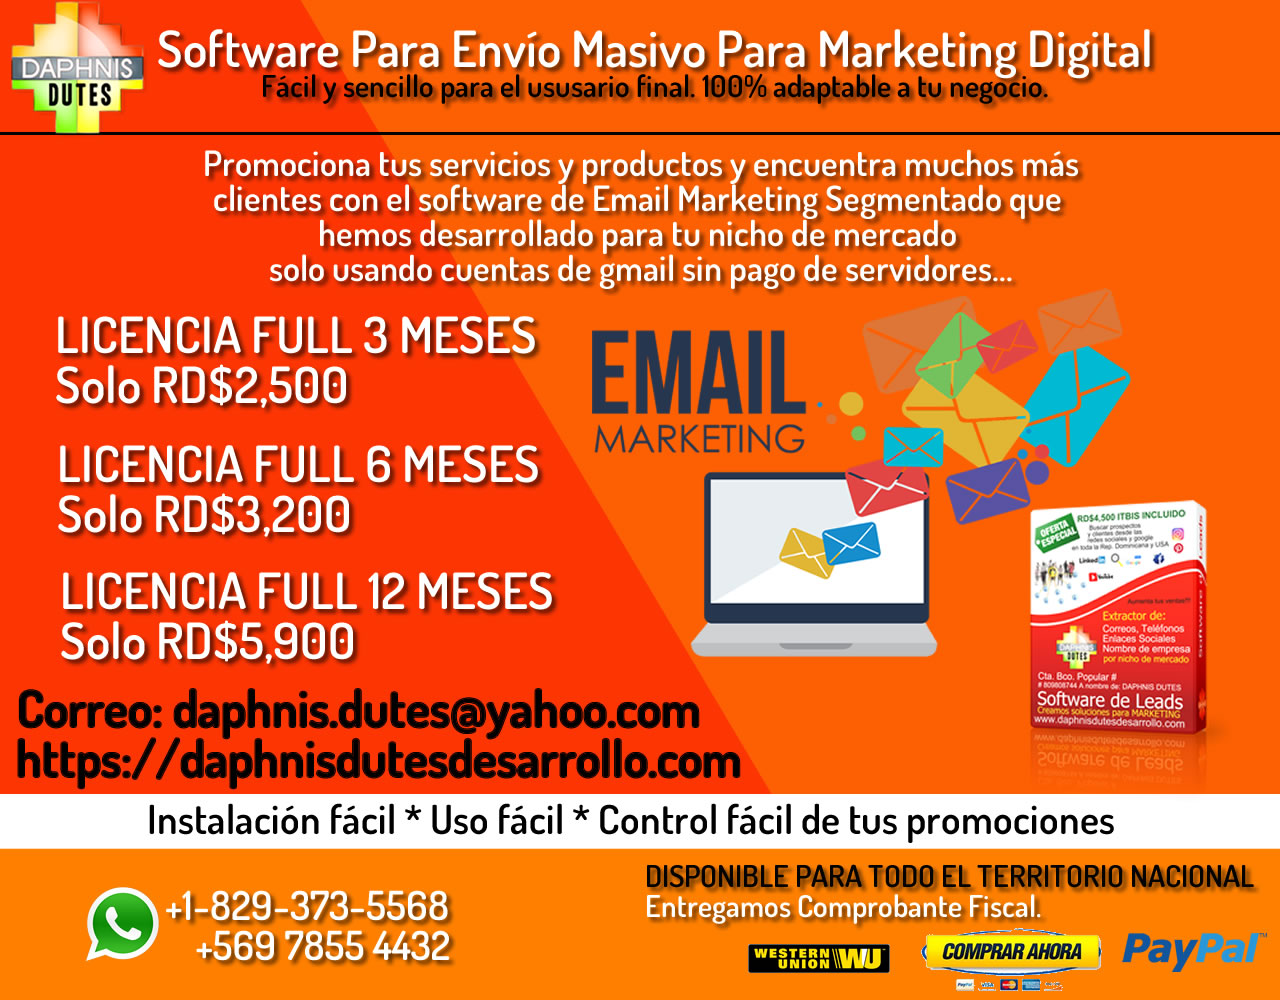 Software para Envio Masivo Para Marketing Digital